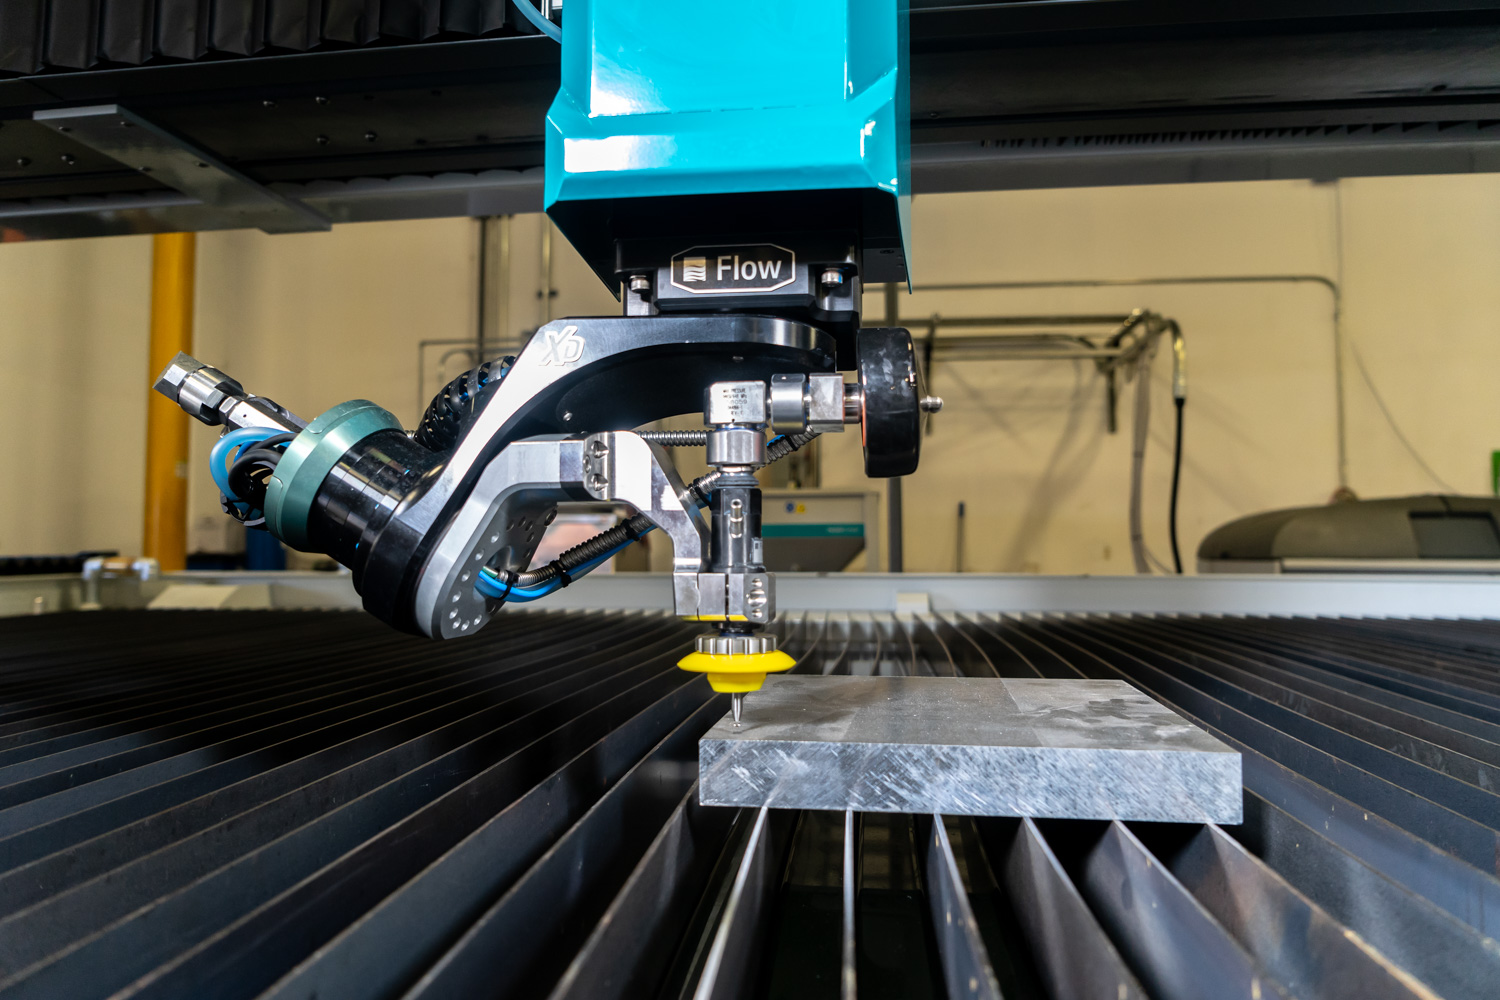 Flow-Mach-500-Waterjet-Cutting-Services-Express-Fabrication-San-Antonio-Hi-Res-15